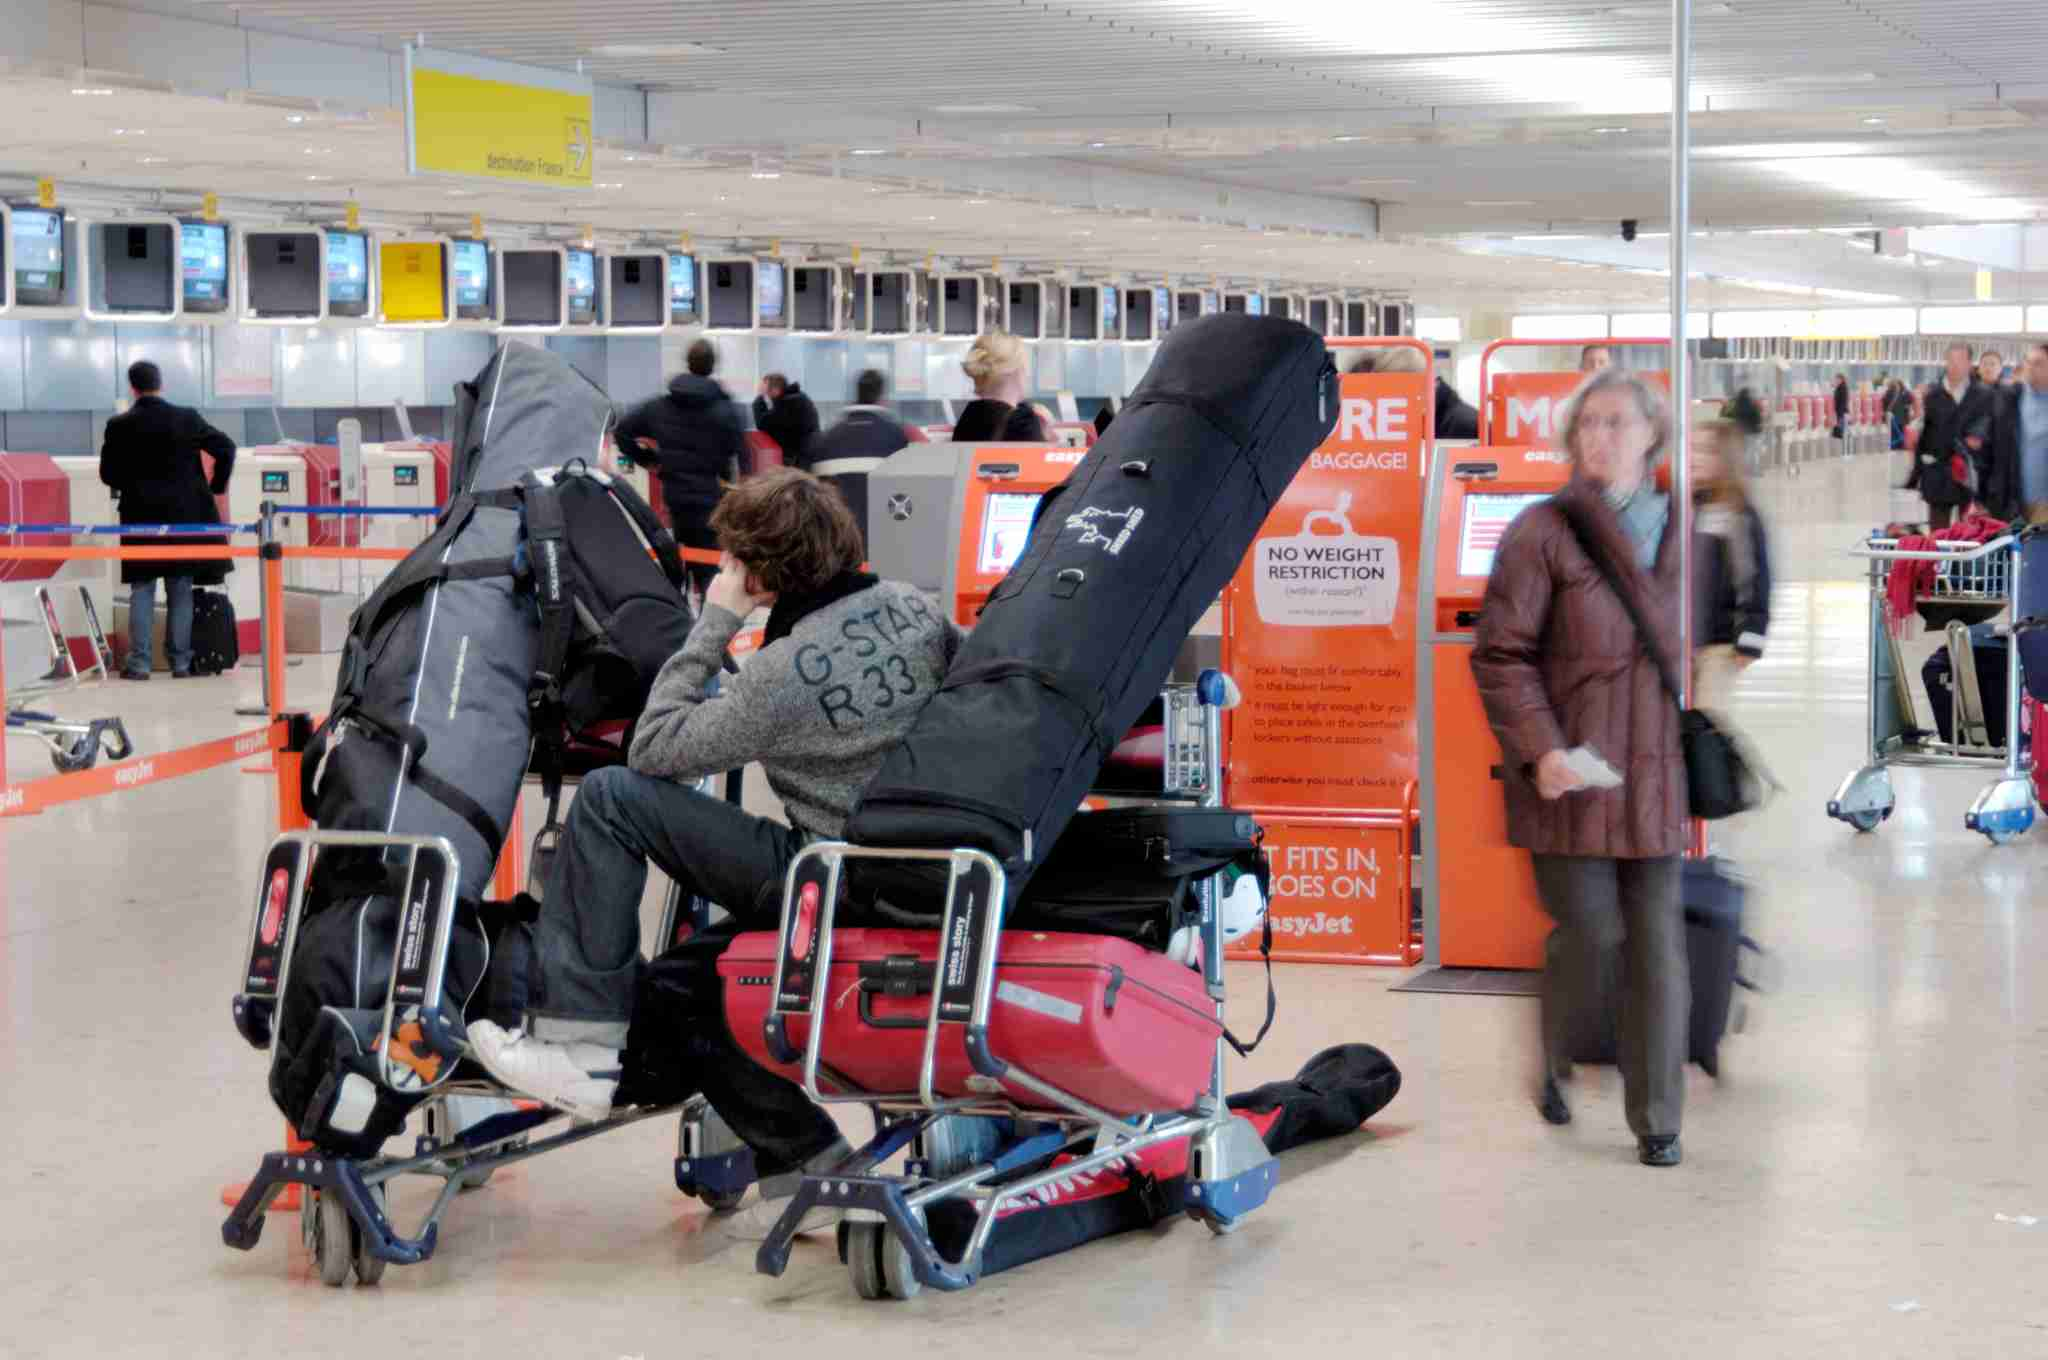 a man sitting on a baggage trolley full of luggage and skis in the easyJet check-in area. (Photo by: aviation-images.com/UIG via Getty Images)